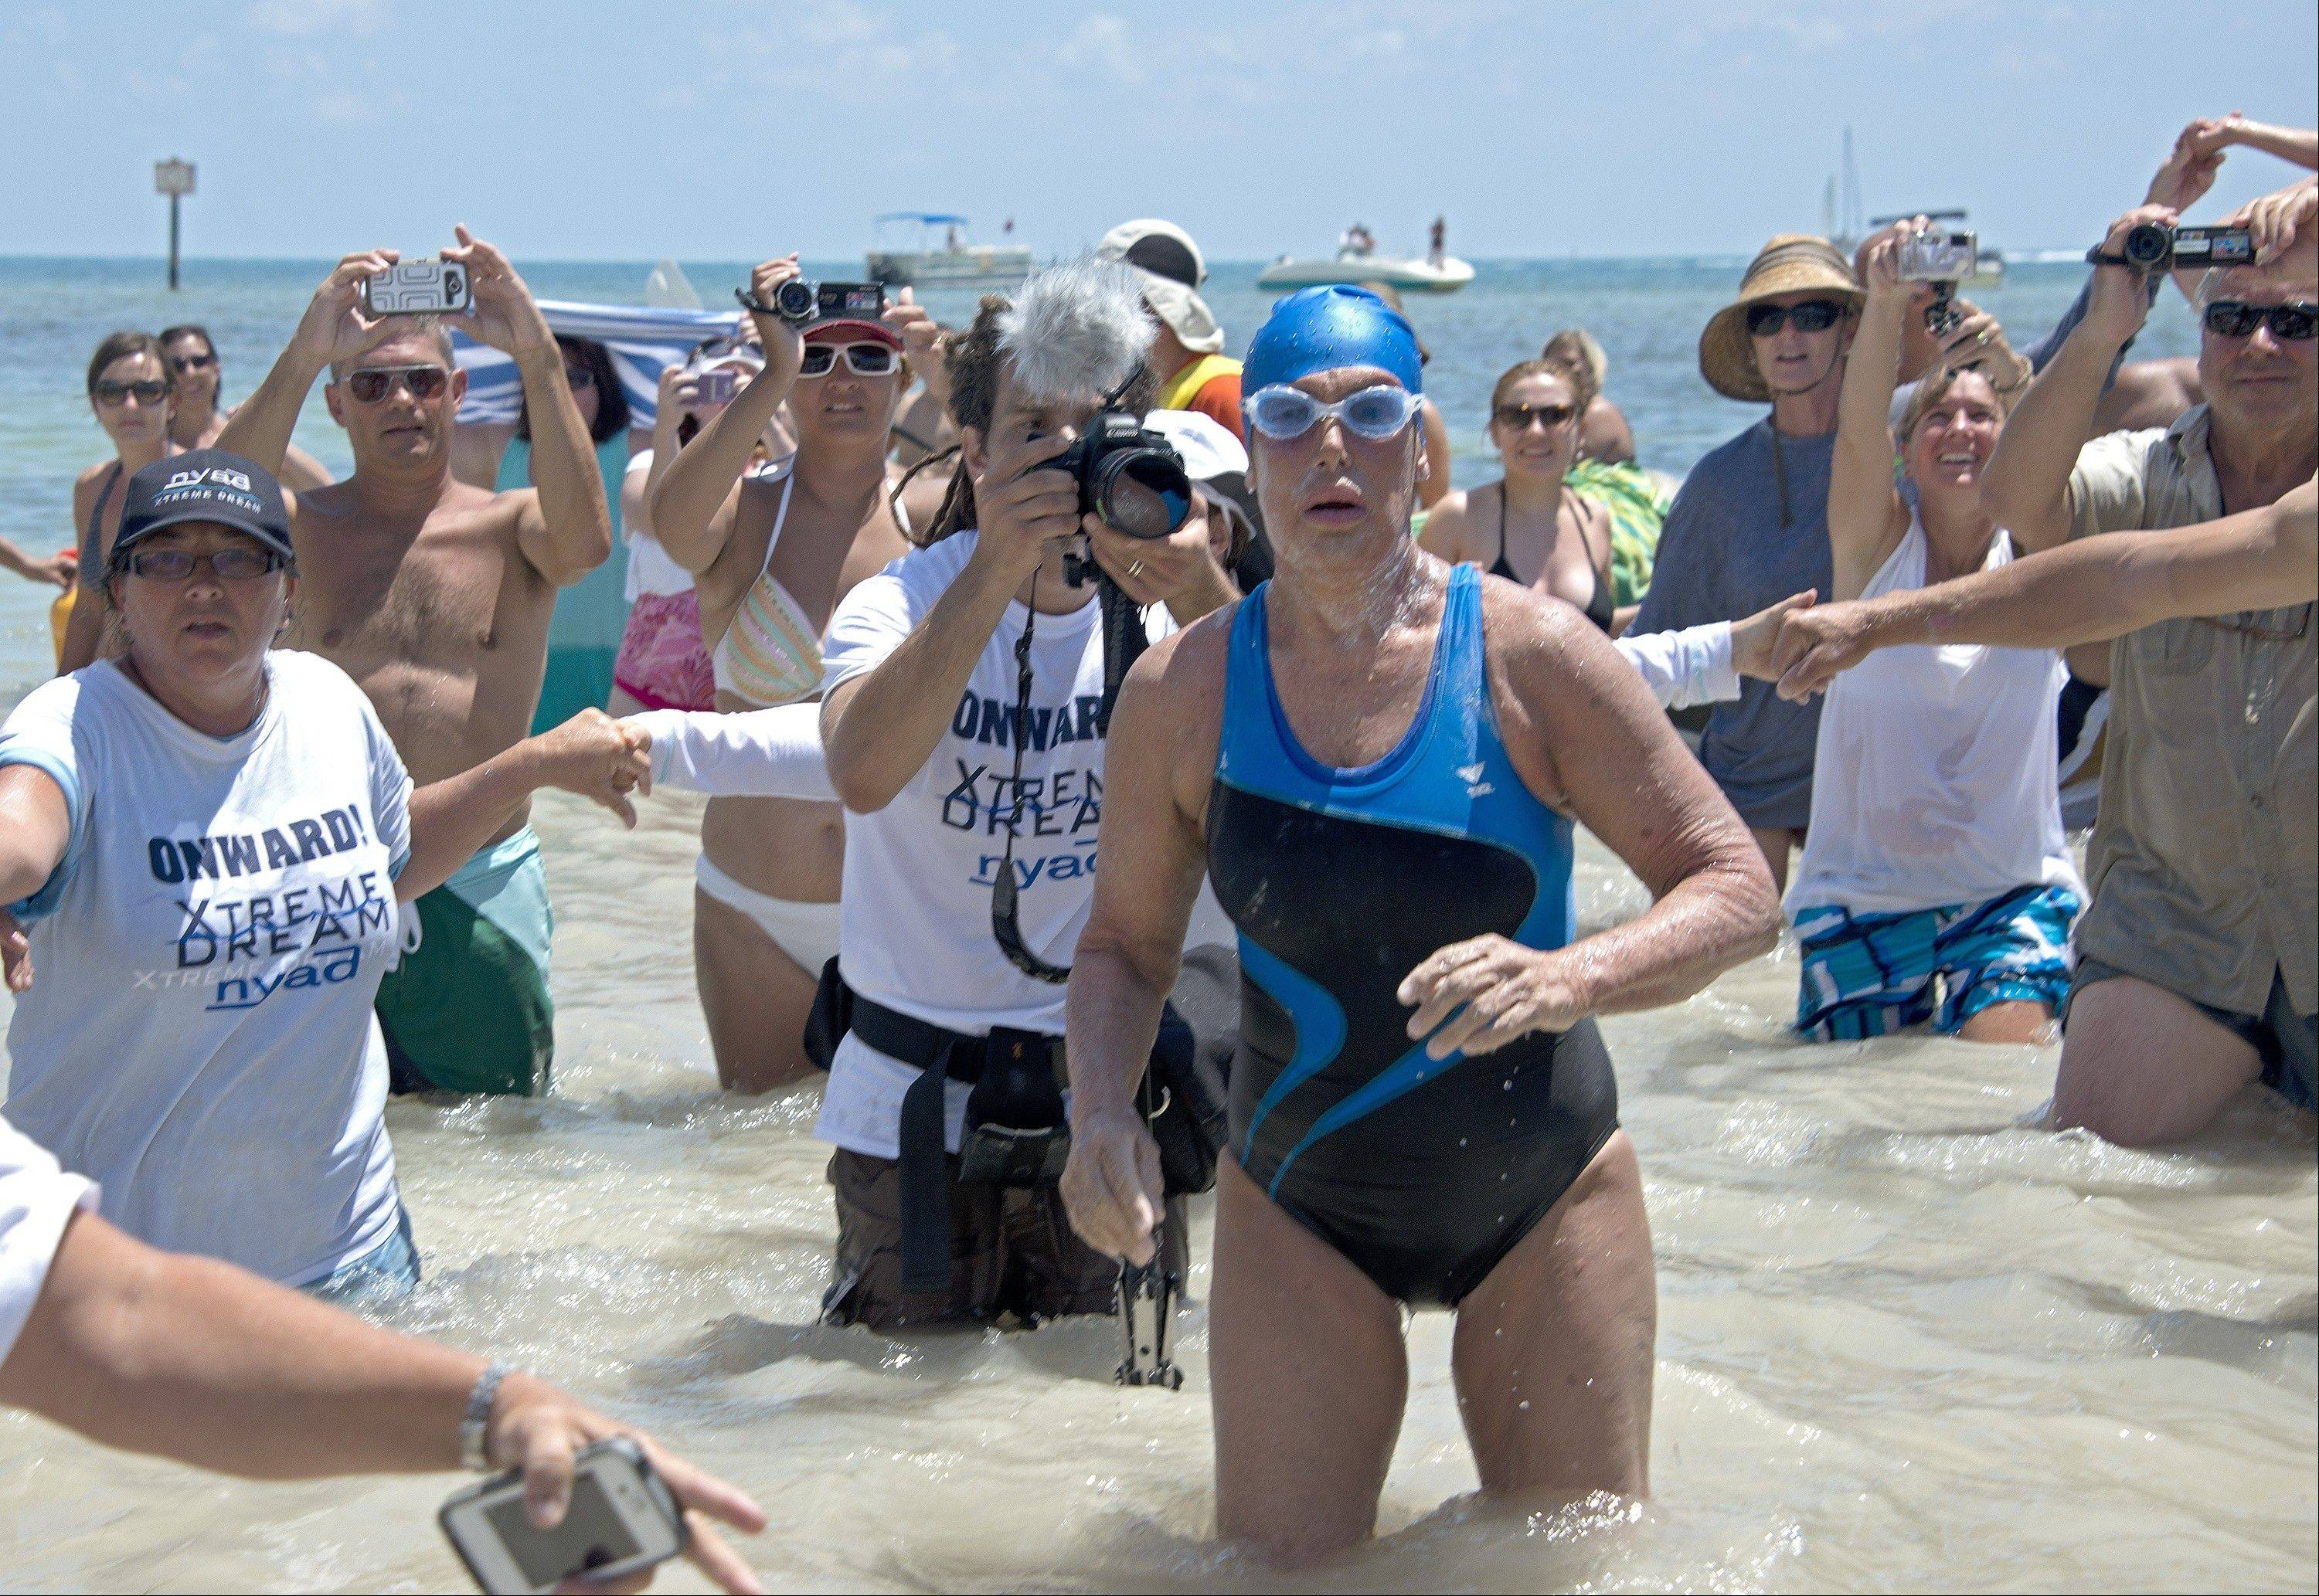 Diana Nyad emerges from the Atlantic Ocean after completing a 111-mile swim from Cuba to Key West, Fla., Sept. 2.